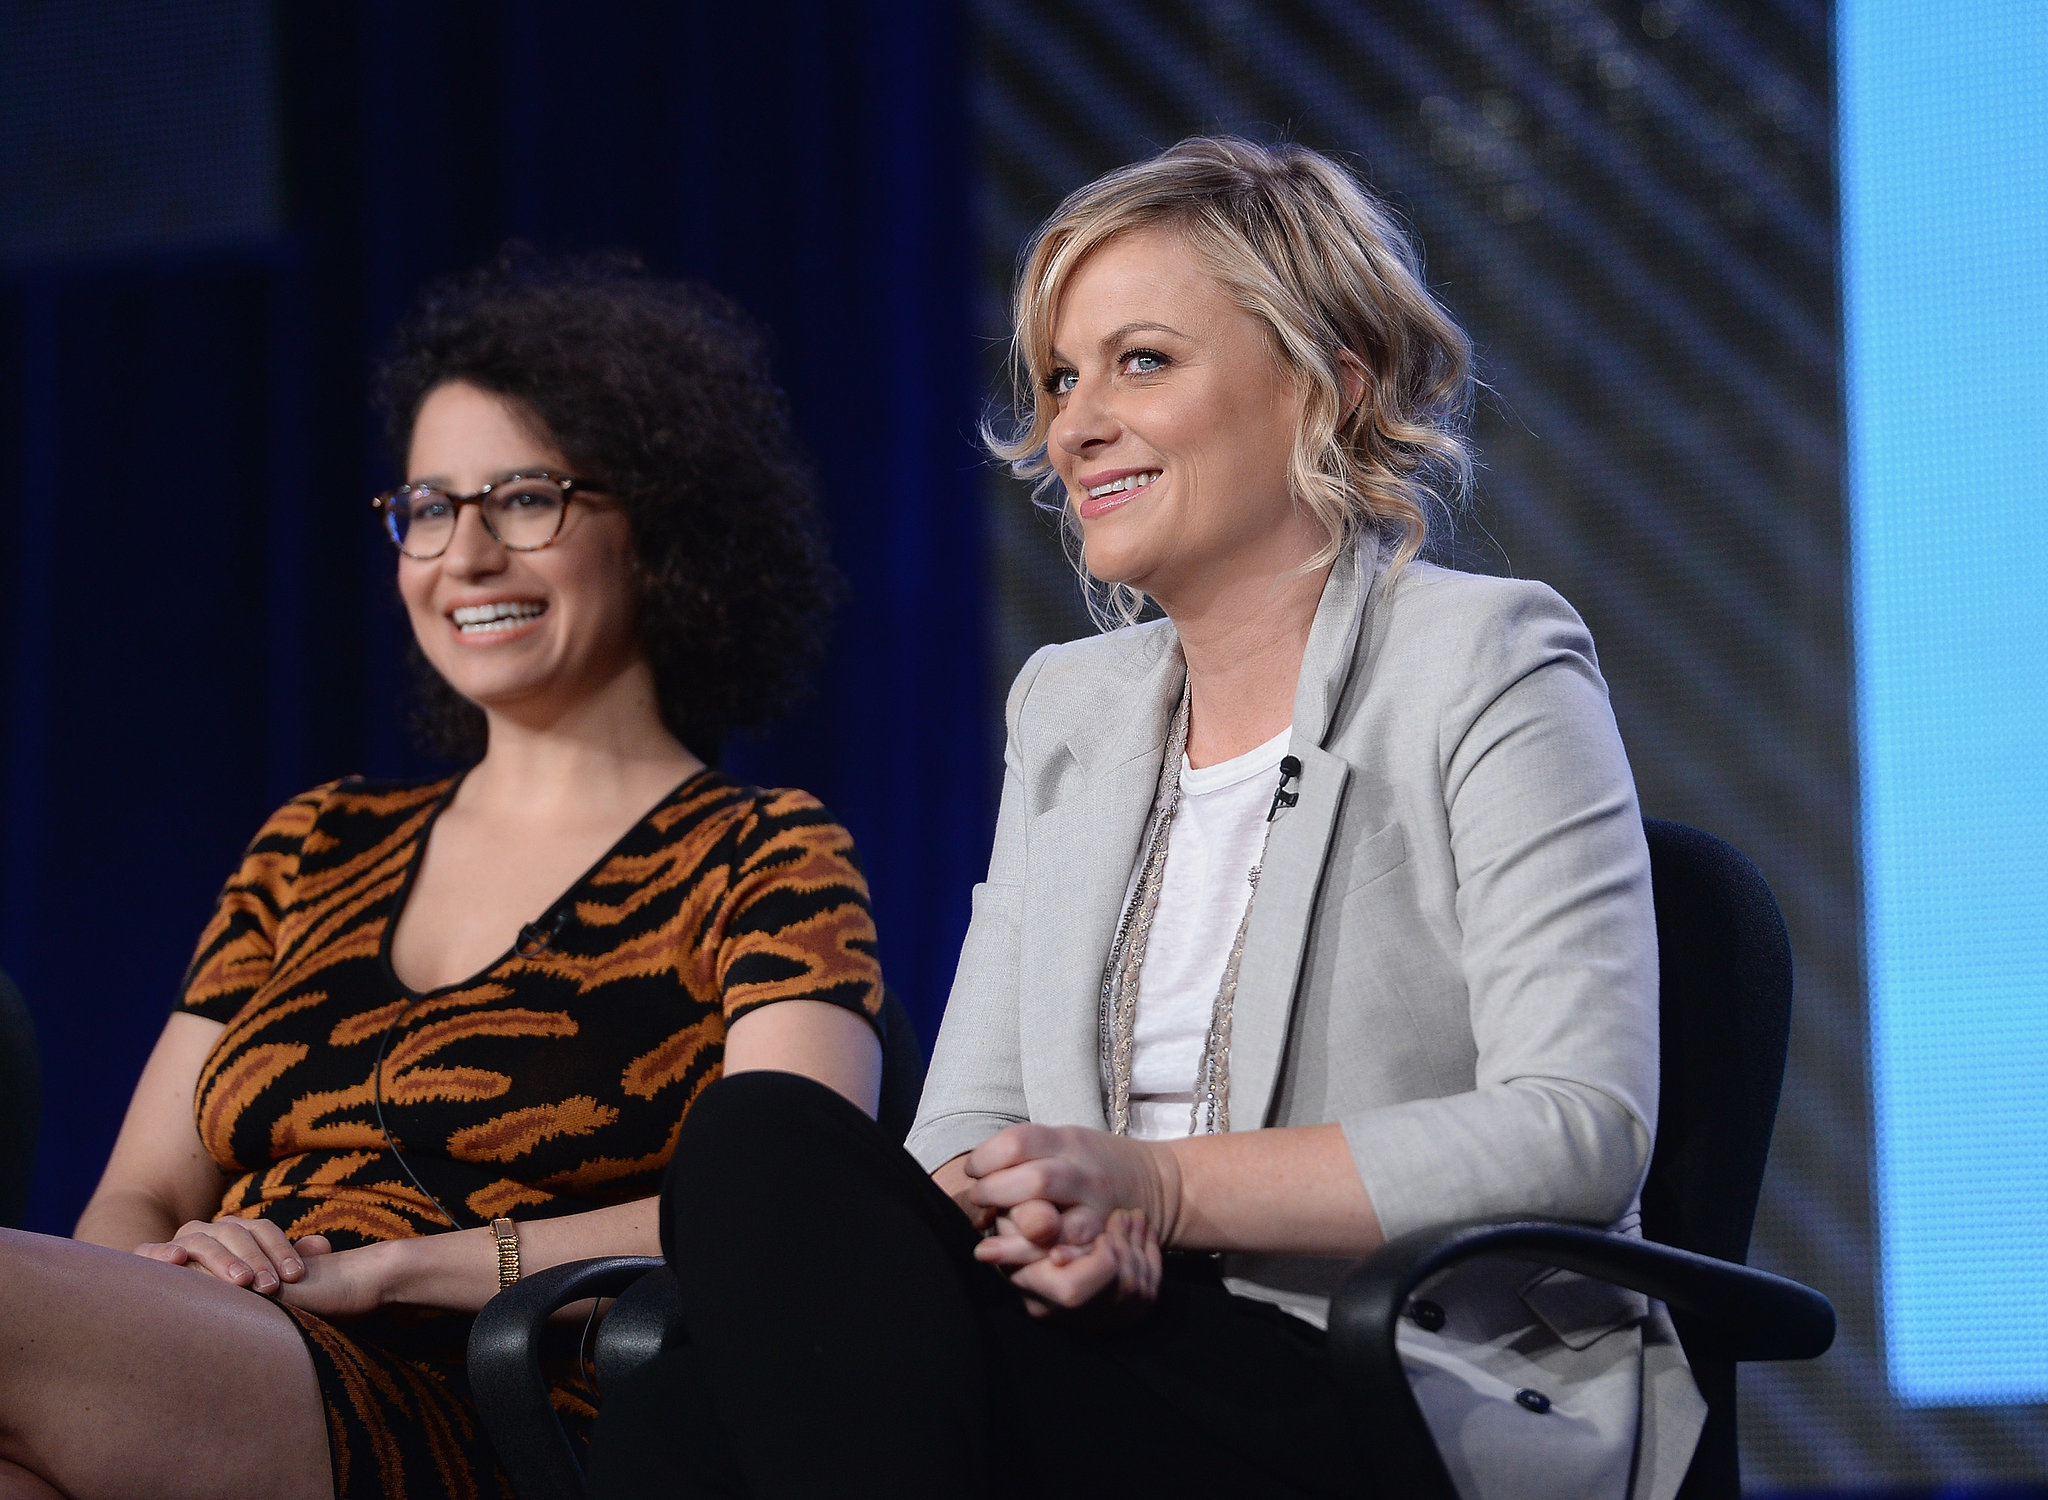 Amy Poehler spoke at the Broad City panel for Comedy Central with star Ilana Glazer.